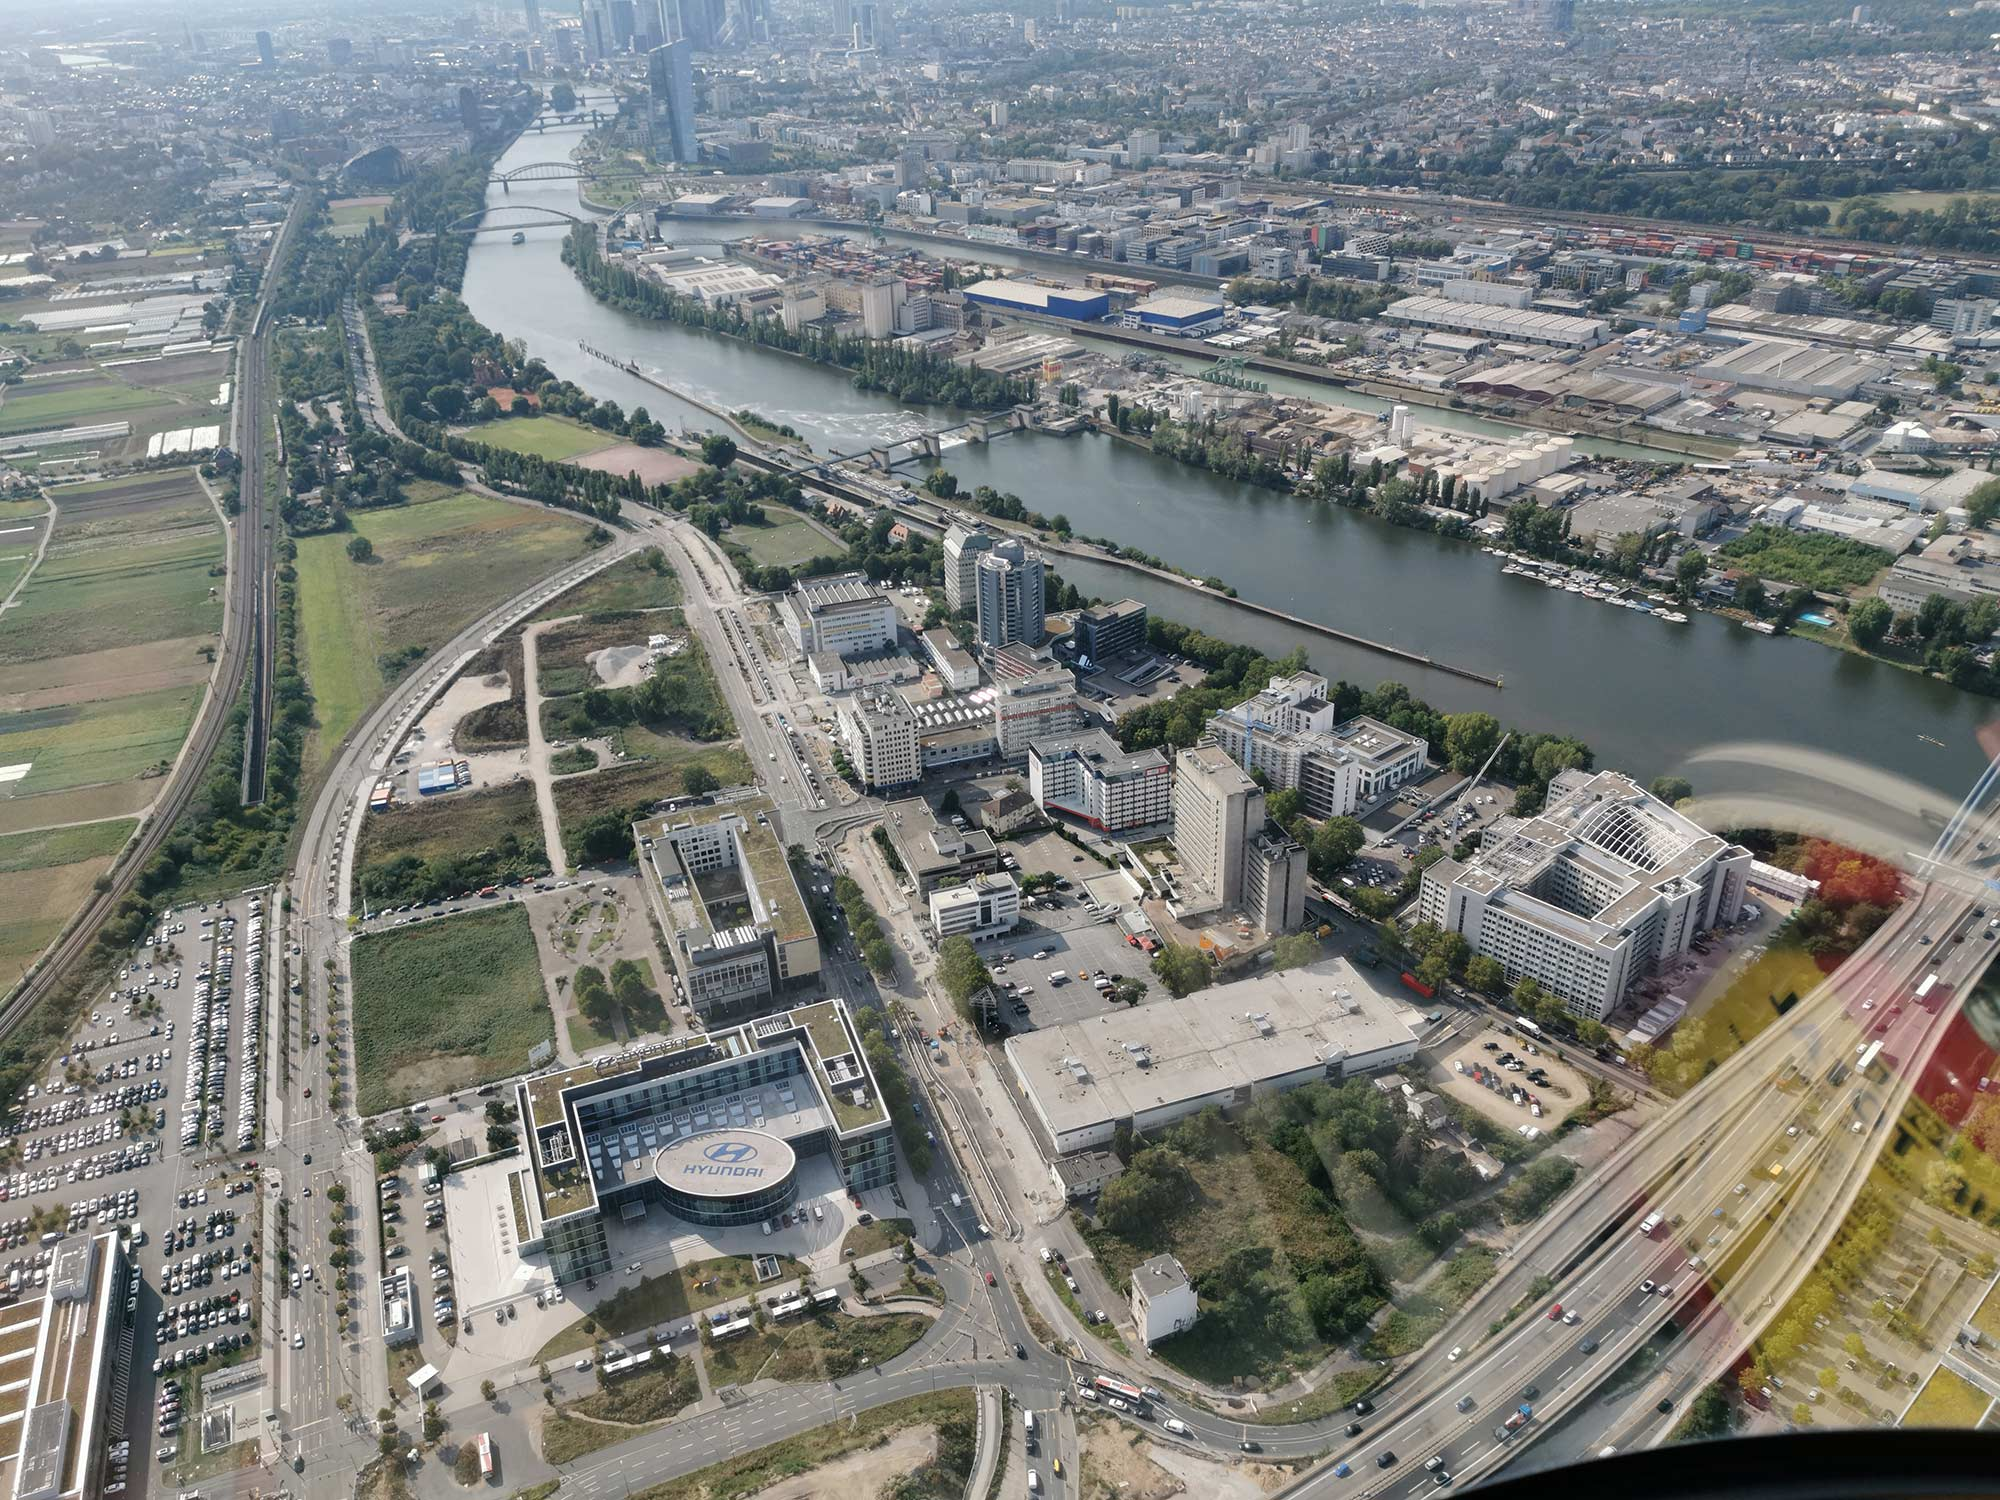 Offenbach Kaiserlei area as seen from the air - aerial photo - helicopter flight to Mainhattan